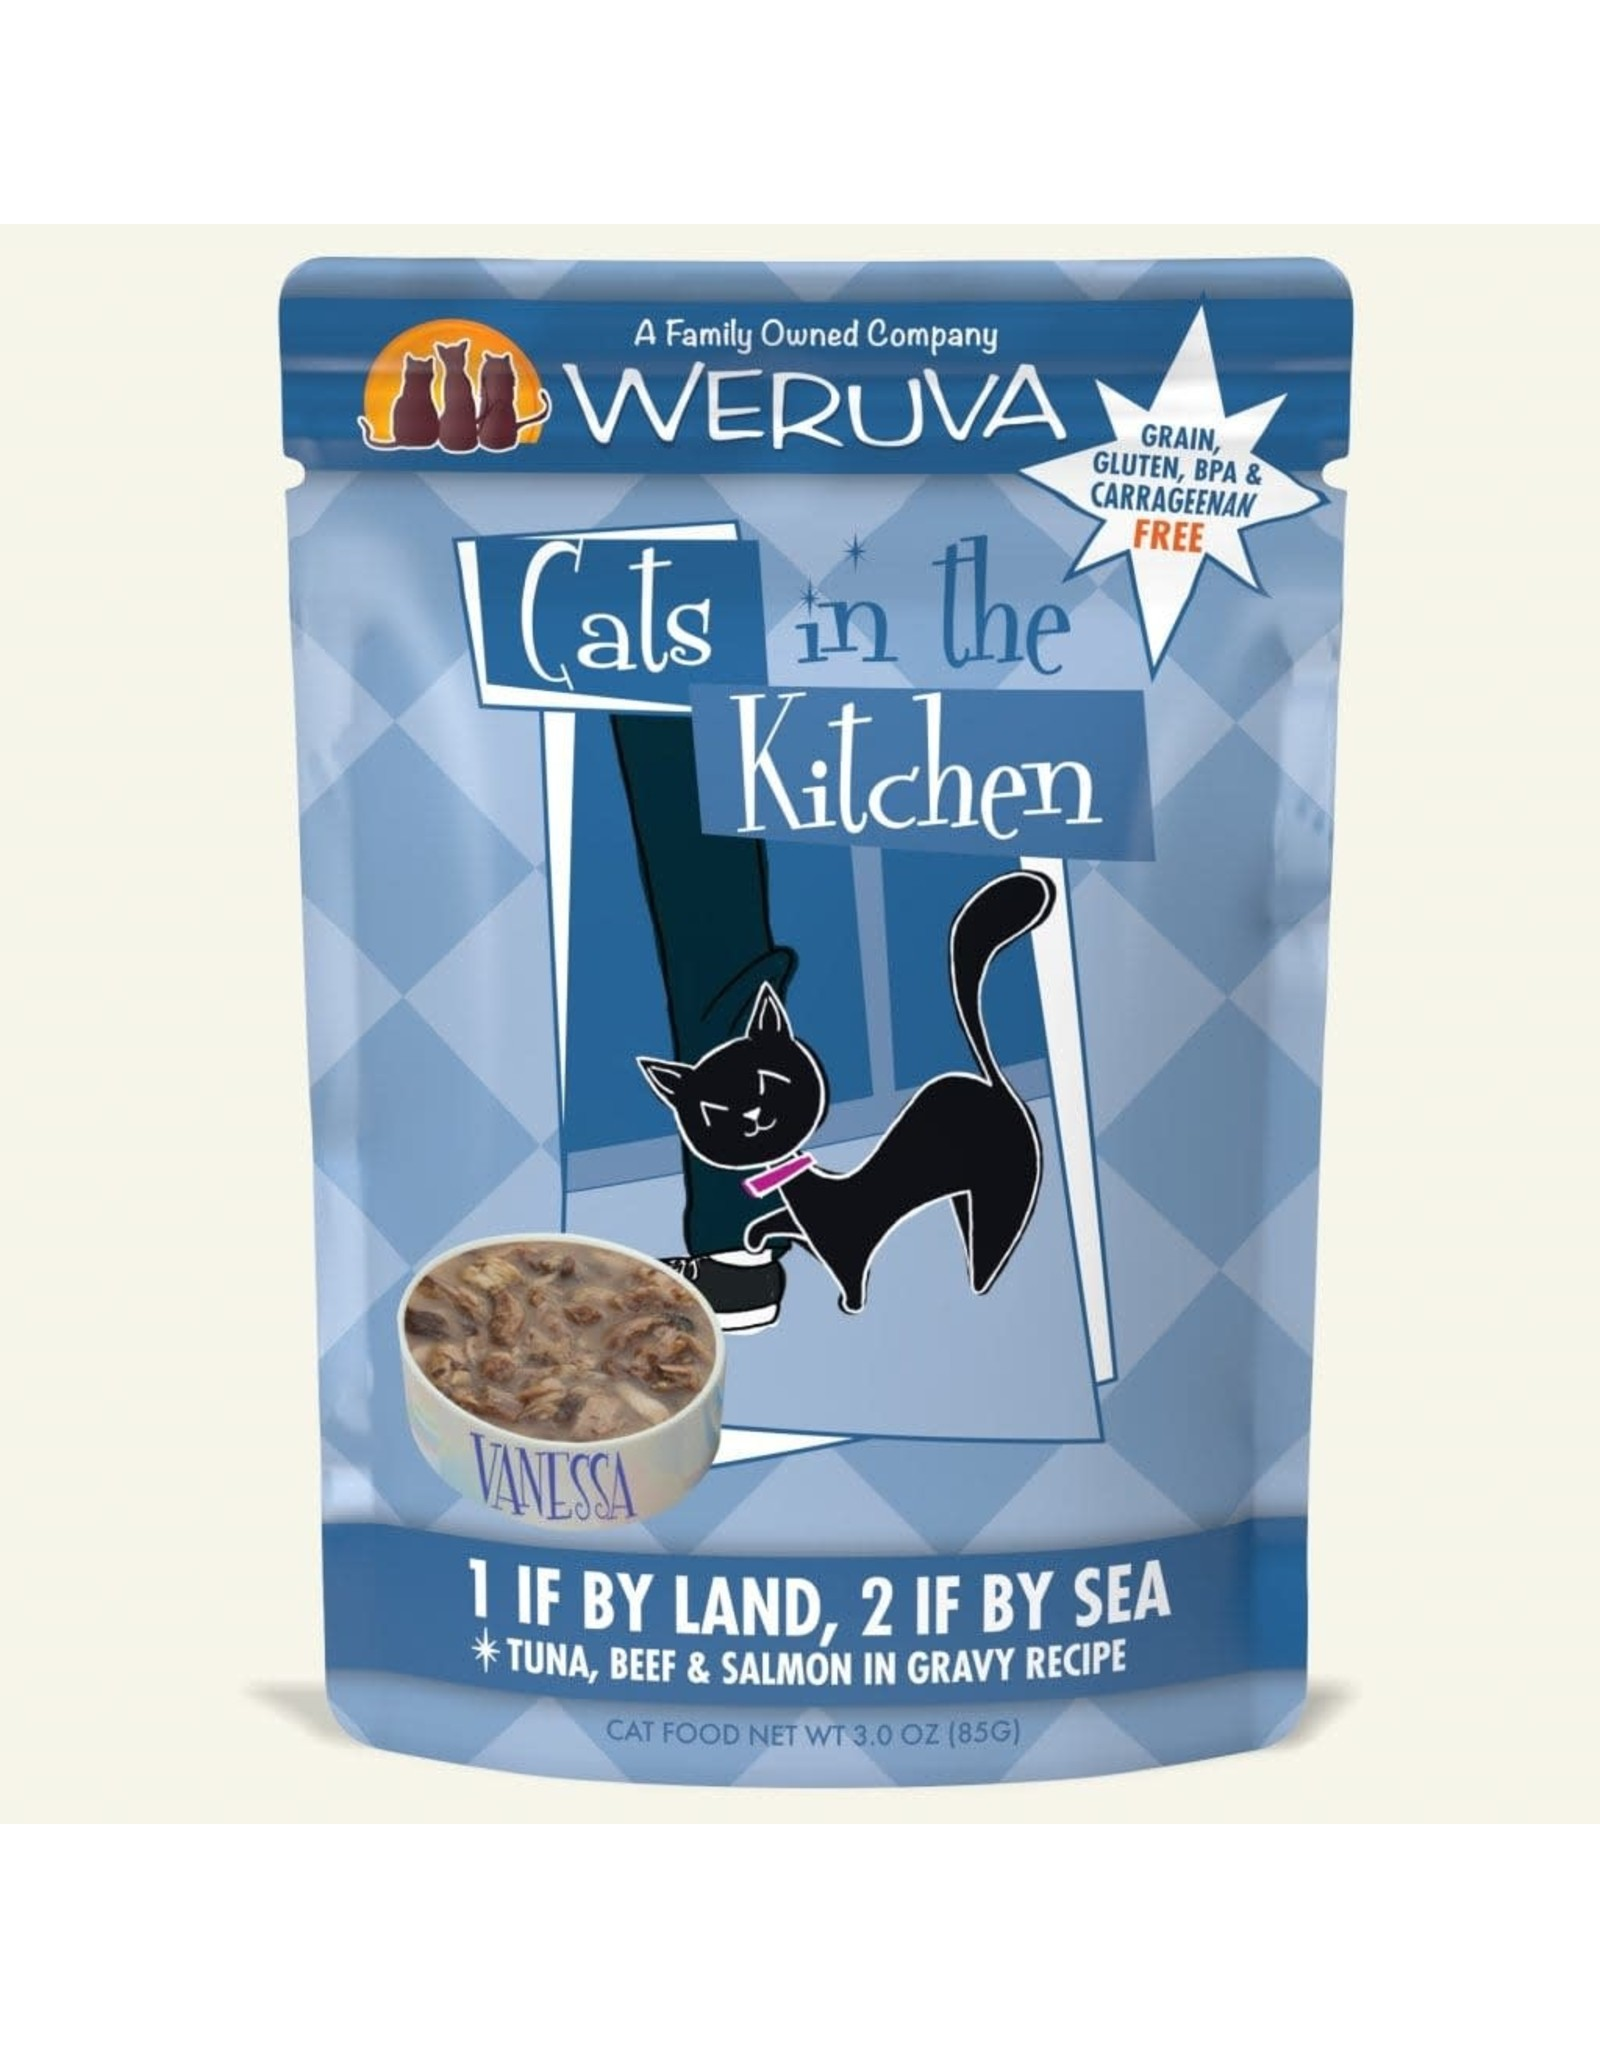 Weruva CITK Pouch 1 By Land, 2 by Sea 3oz